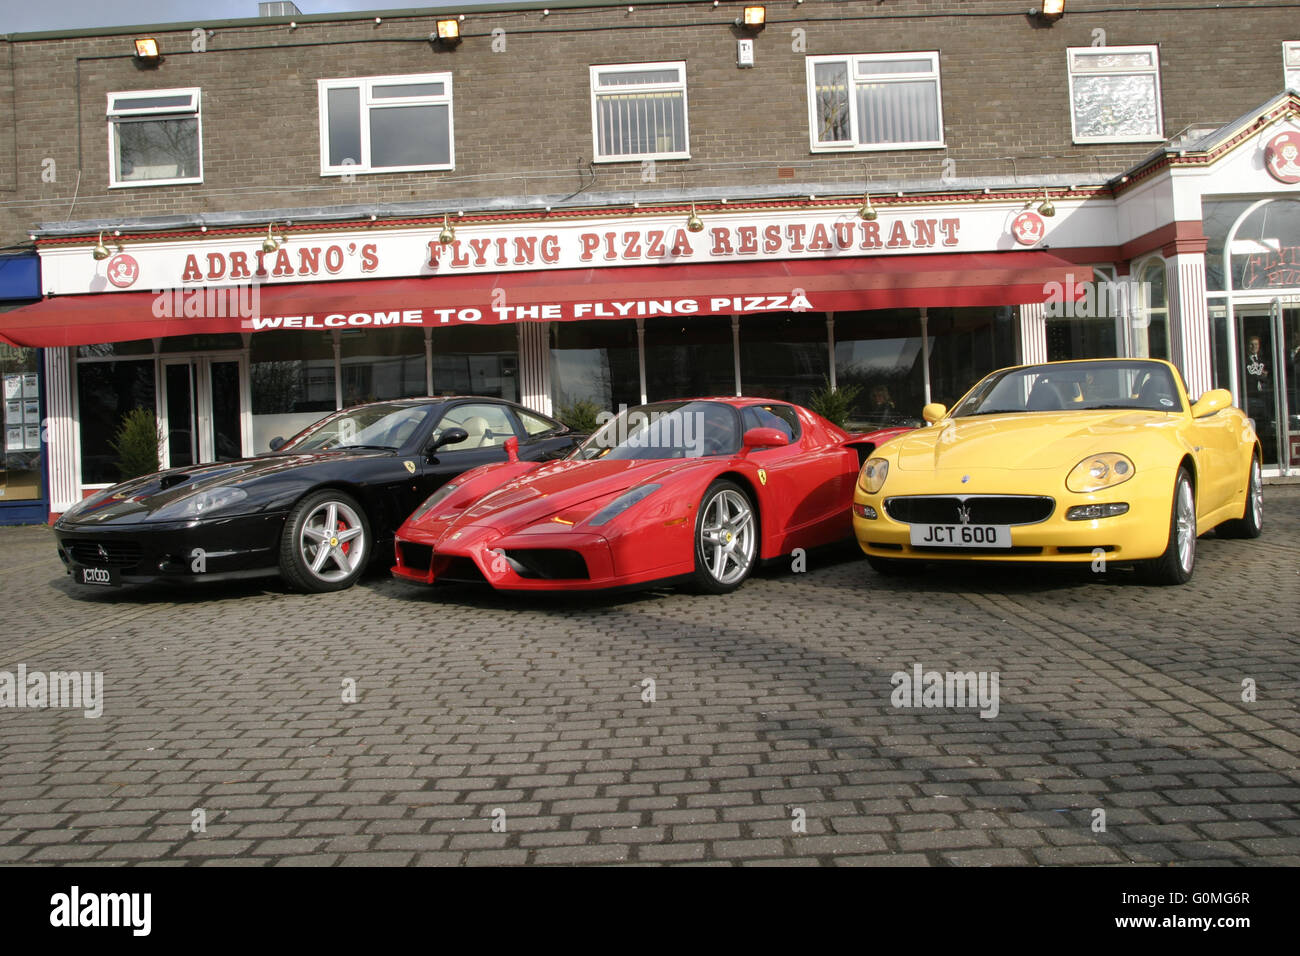 Ferrari 575M Maranello F1, Ferrari Enzo & Maserati Cambiocorsa at the Flying Pizza, Leeds. Stock Photo